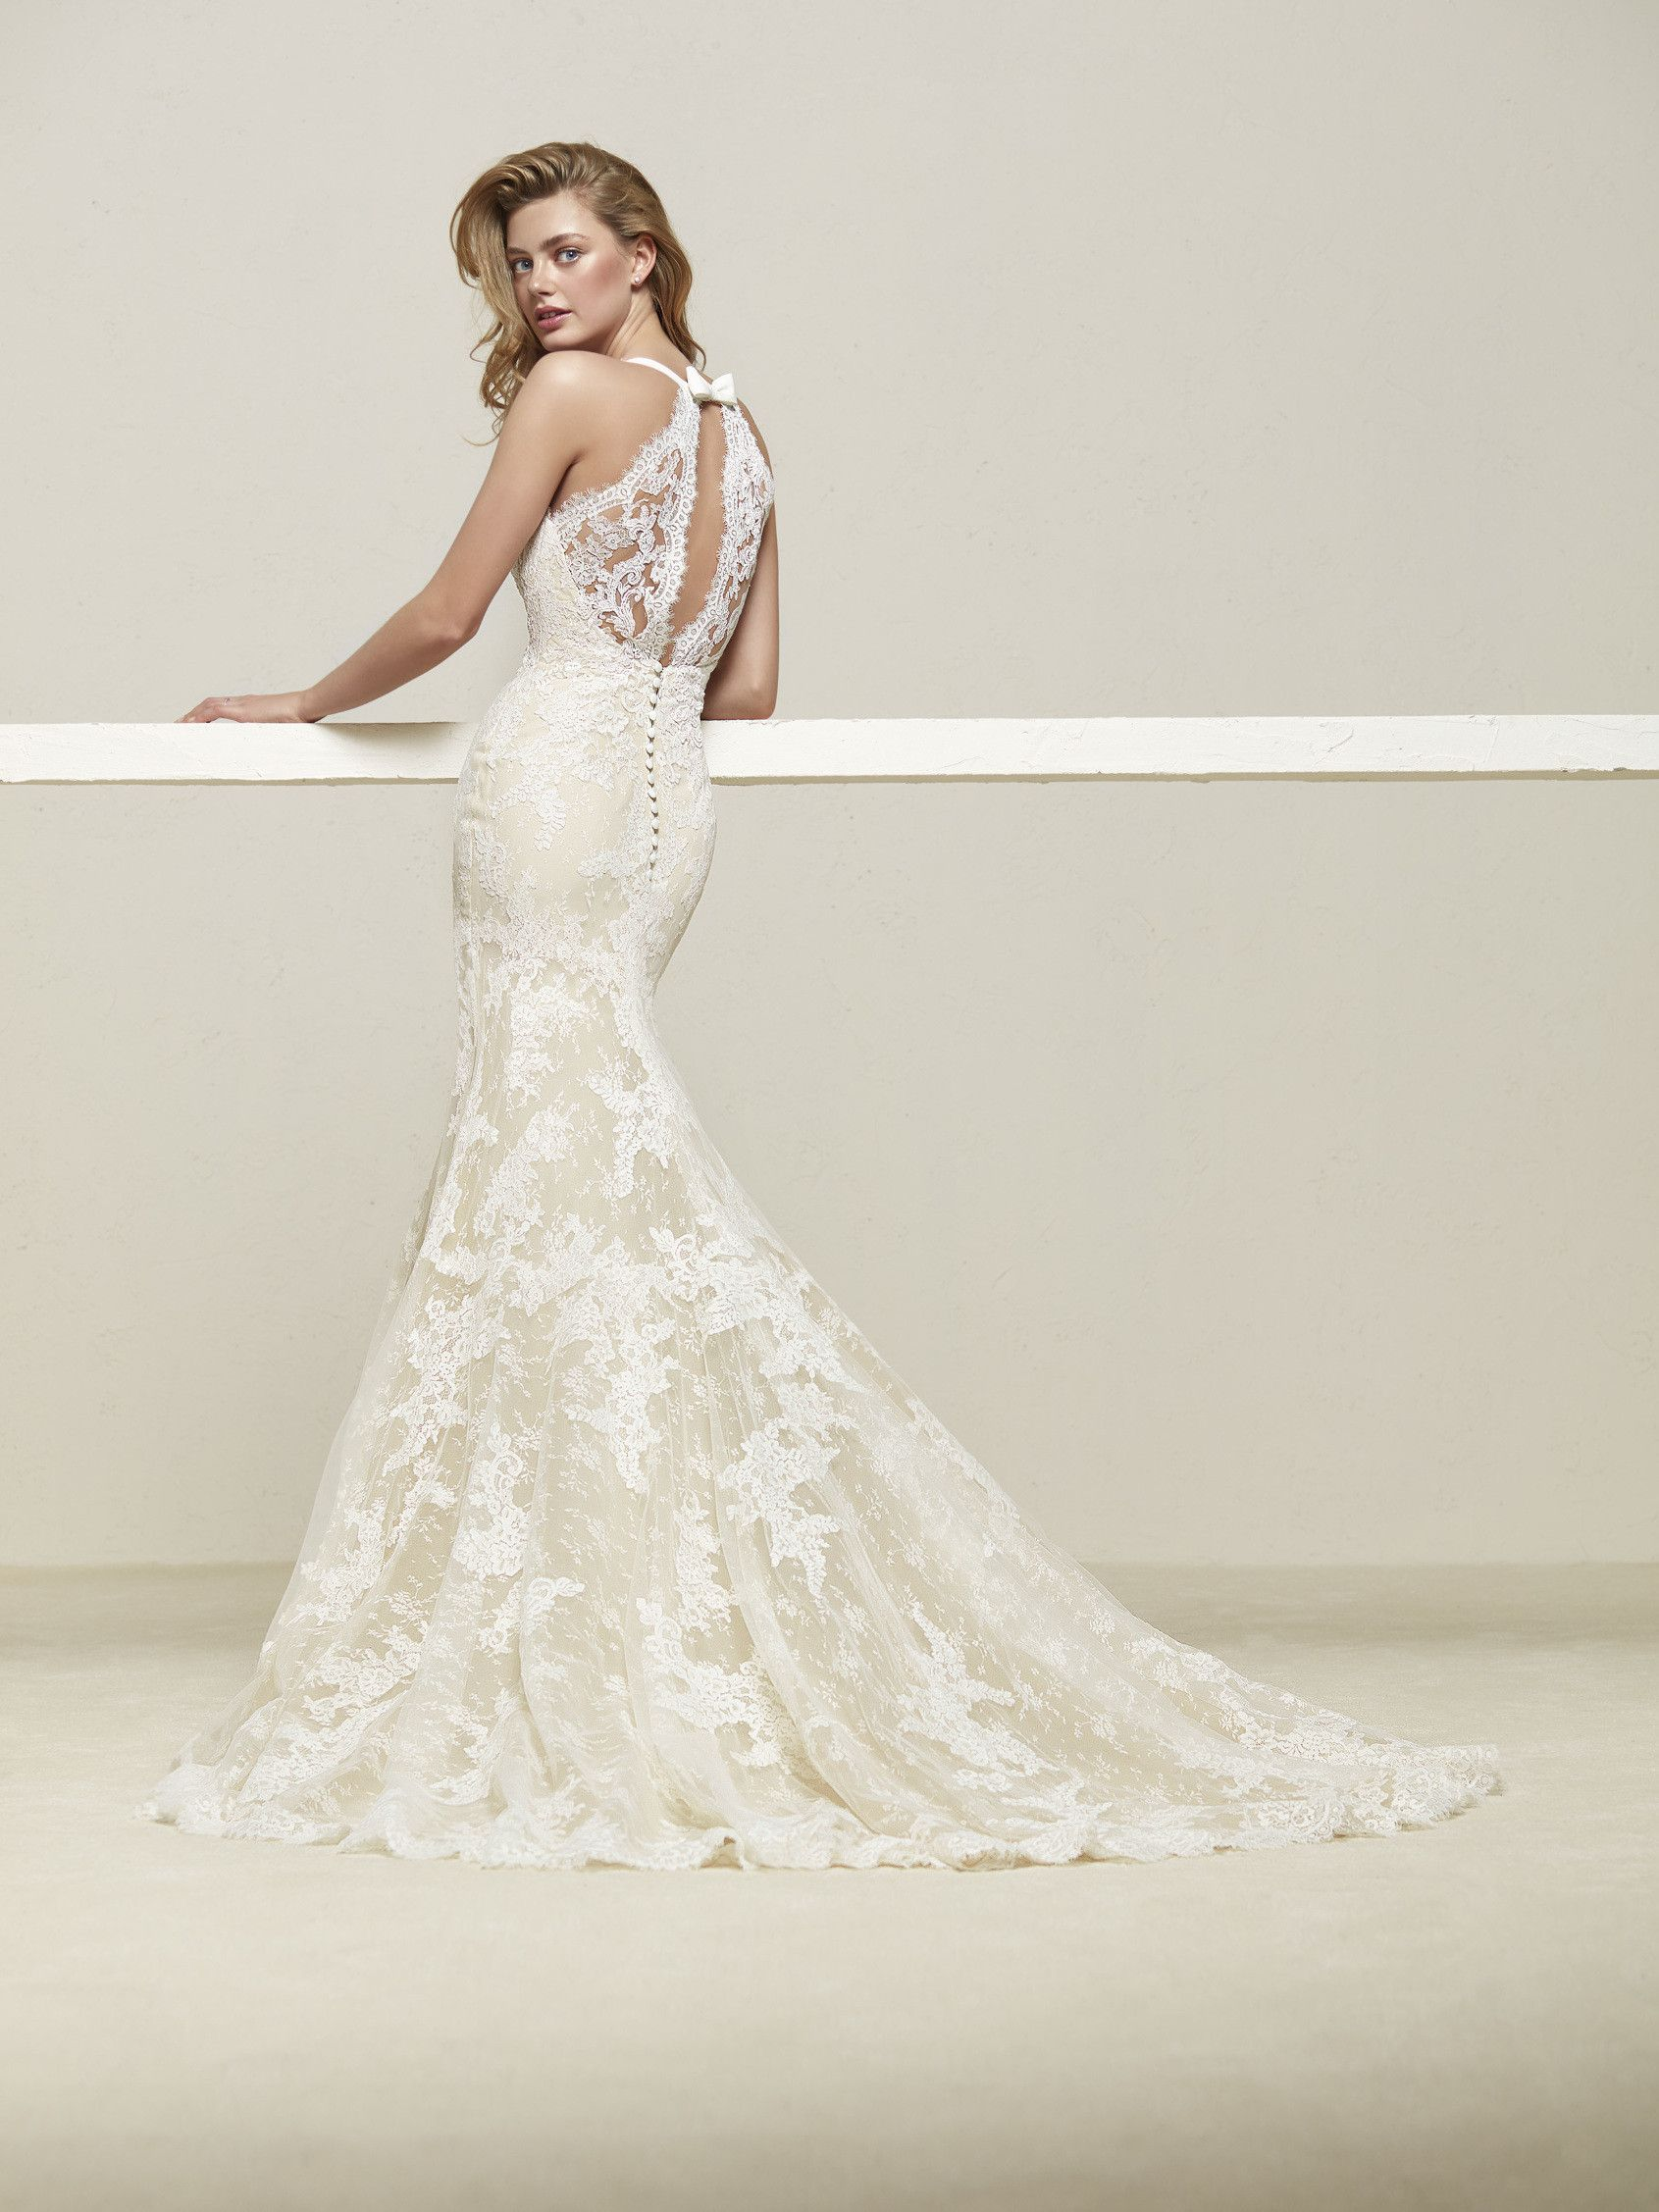 Drilos from Pronovias is available at Sincerely, The Bride located ...